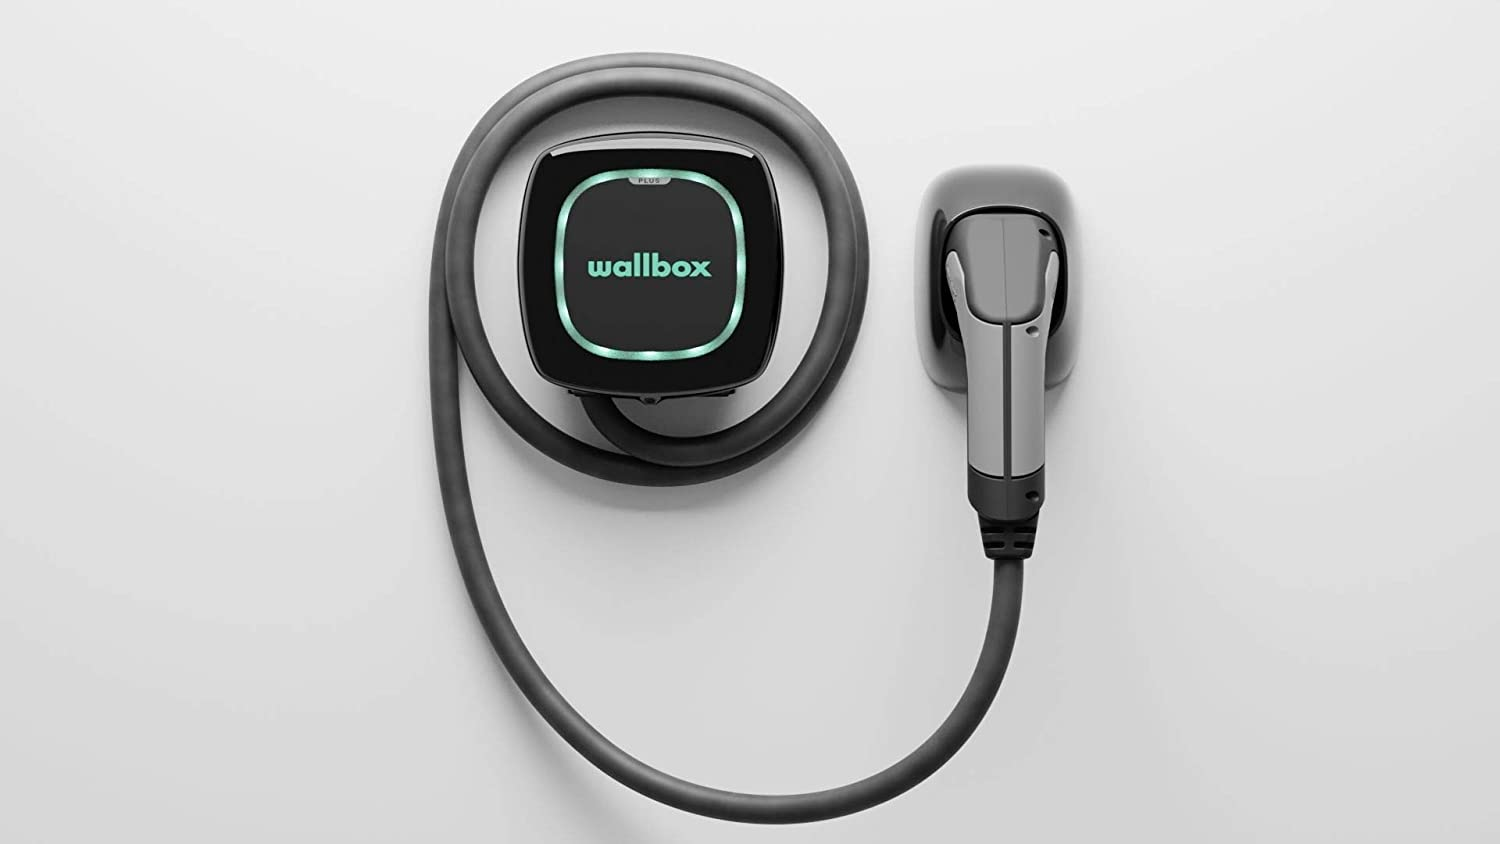 Cargador de Coches Eléctricos Wallbox Pulsar Plus